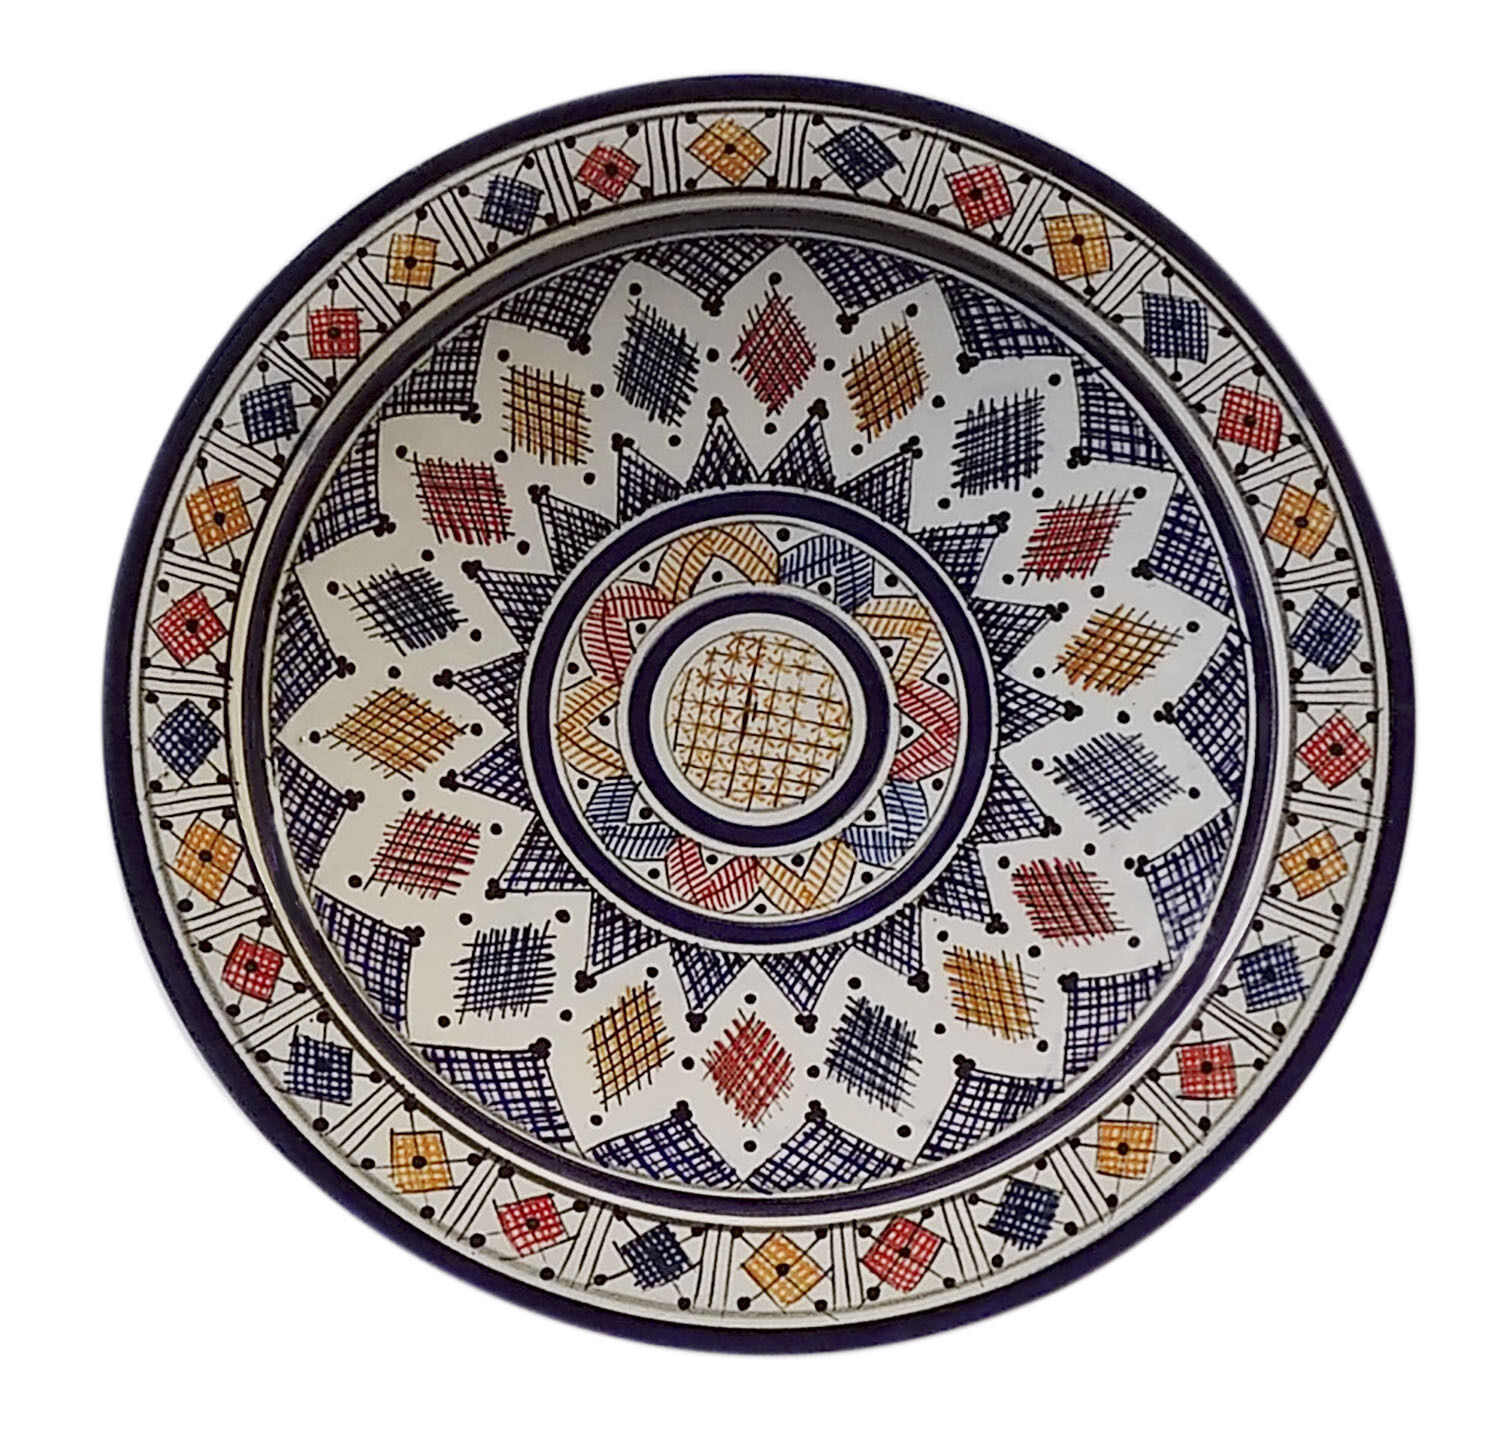 Treasures of MGoldcco is proud to have available these heavy and durable ceramic